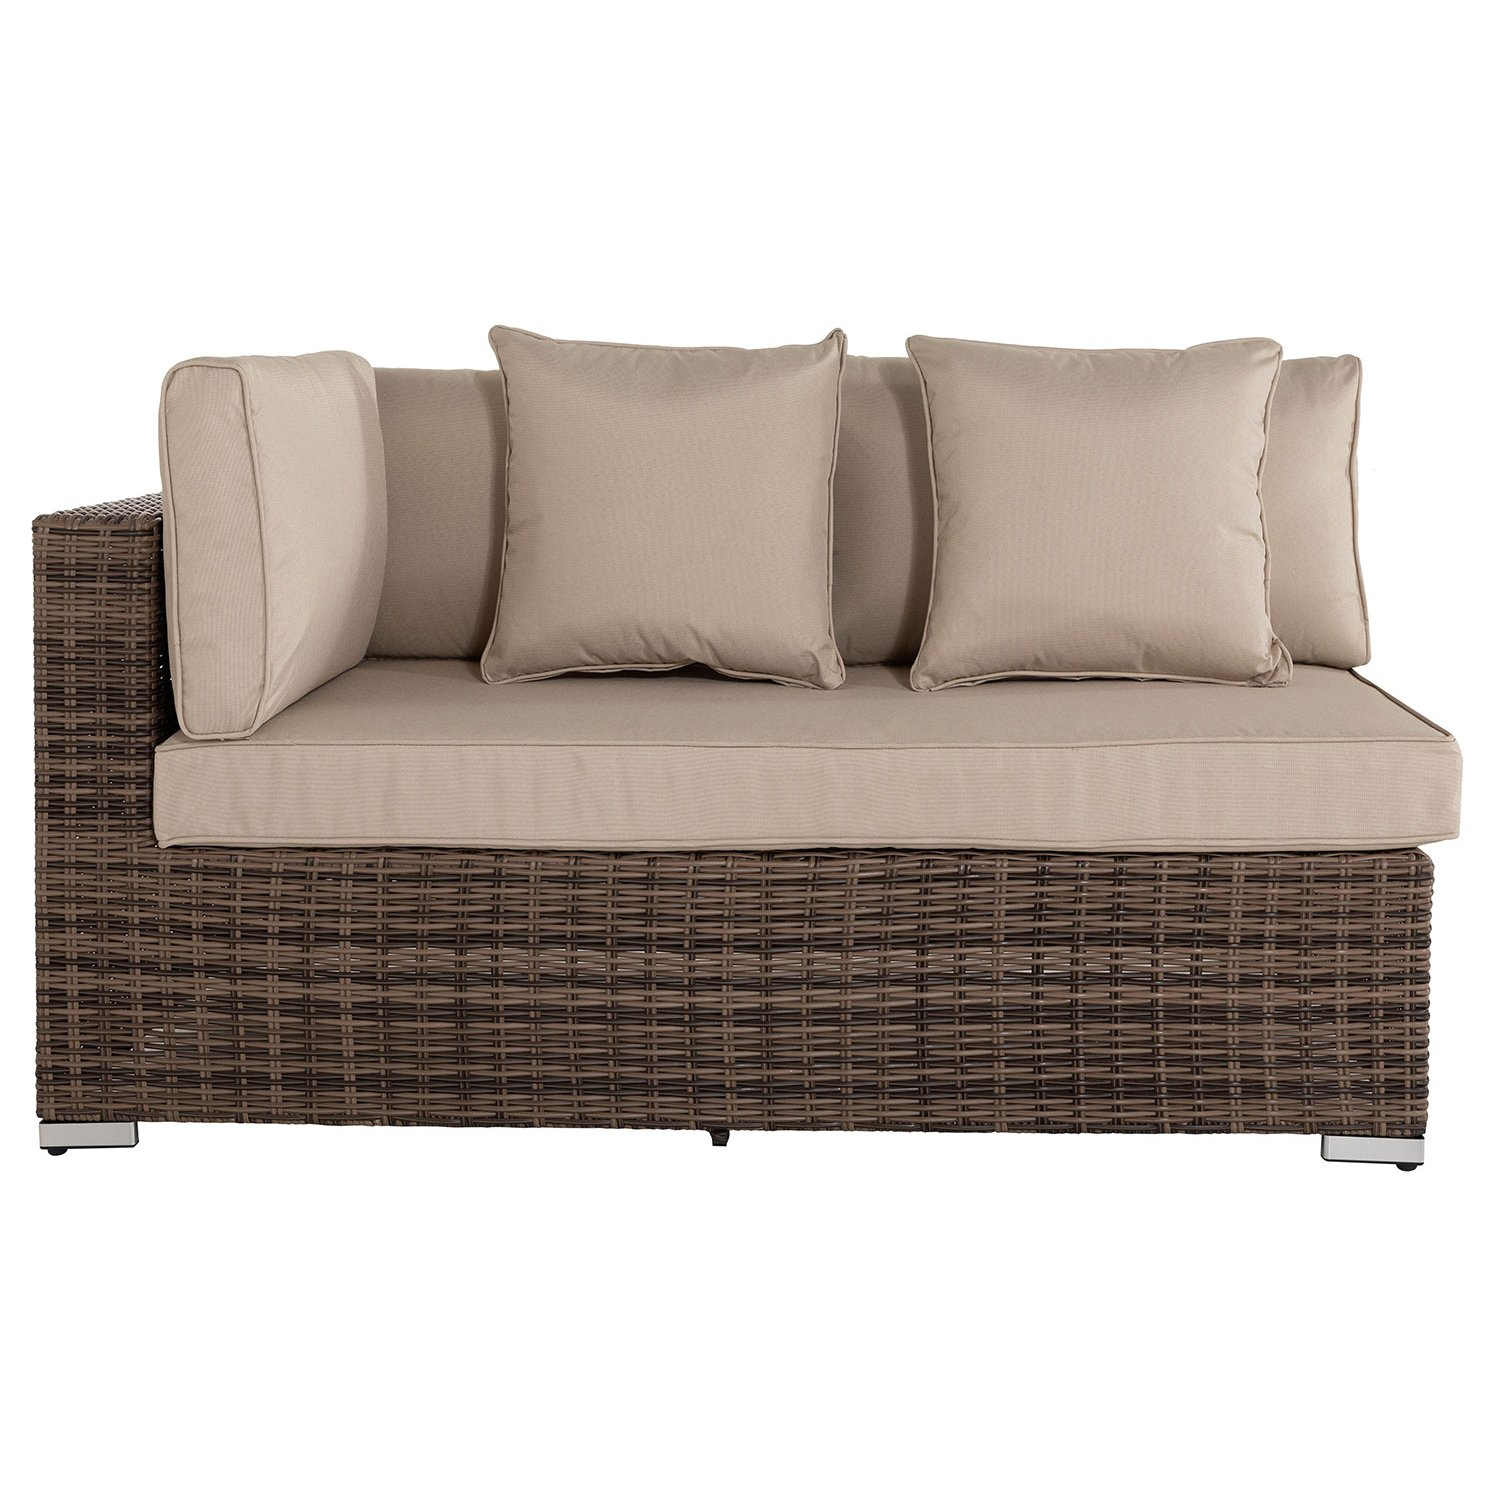 image-Monaco Rectangular Right As You Sit Rattan Garden Sofa in Premium Truffle Brown & Champagne - Premium Weave